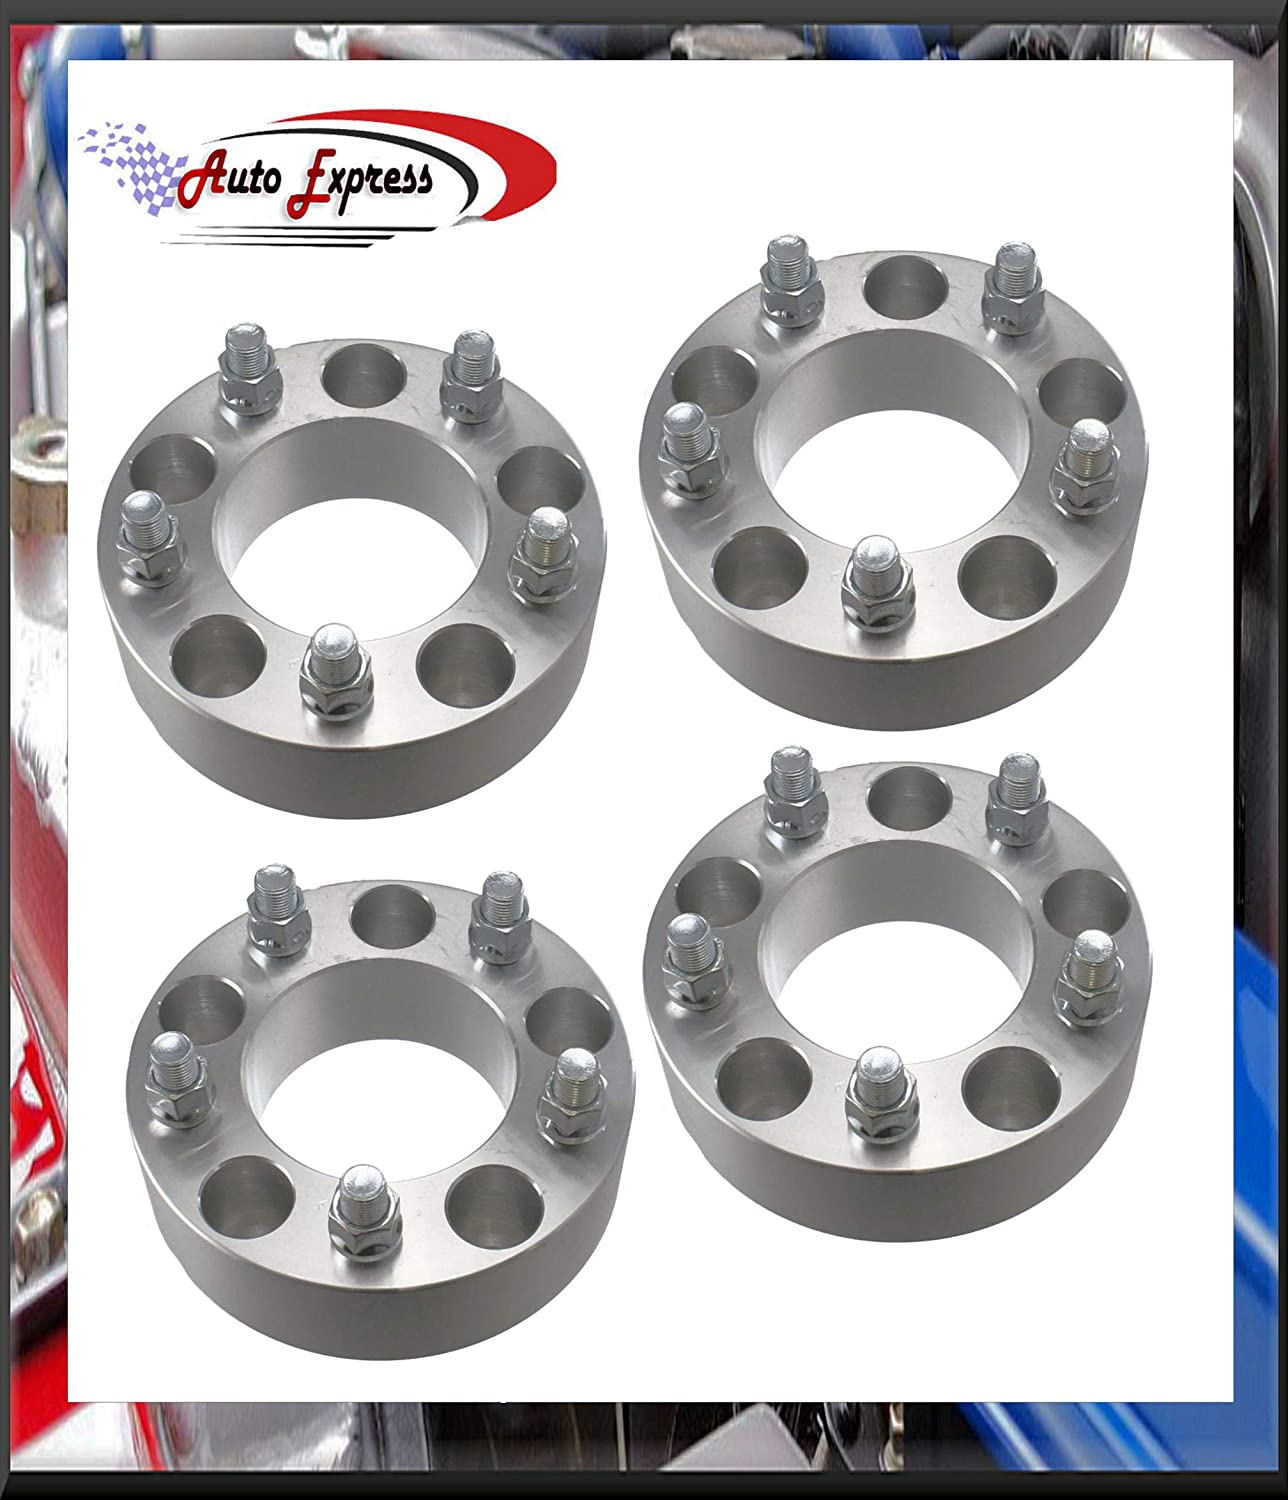 4 Pc 5x135 MM To 6x135 MM 5 To 6 Lug Wheel Spacers Adapters Conversion Bolt On 2 Thick 5 Lug Wheels on 6 Lug Trucks 6x135 Wheels On 5x135 Trucks Heavy Duty 2 Piece Adapters Fits Ford trucks.